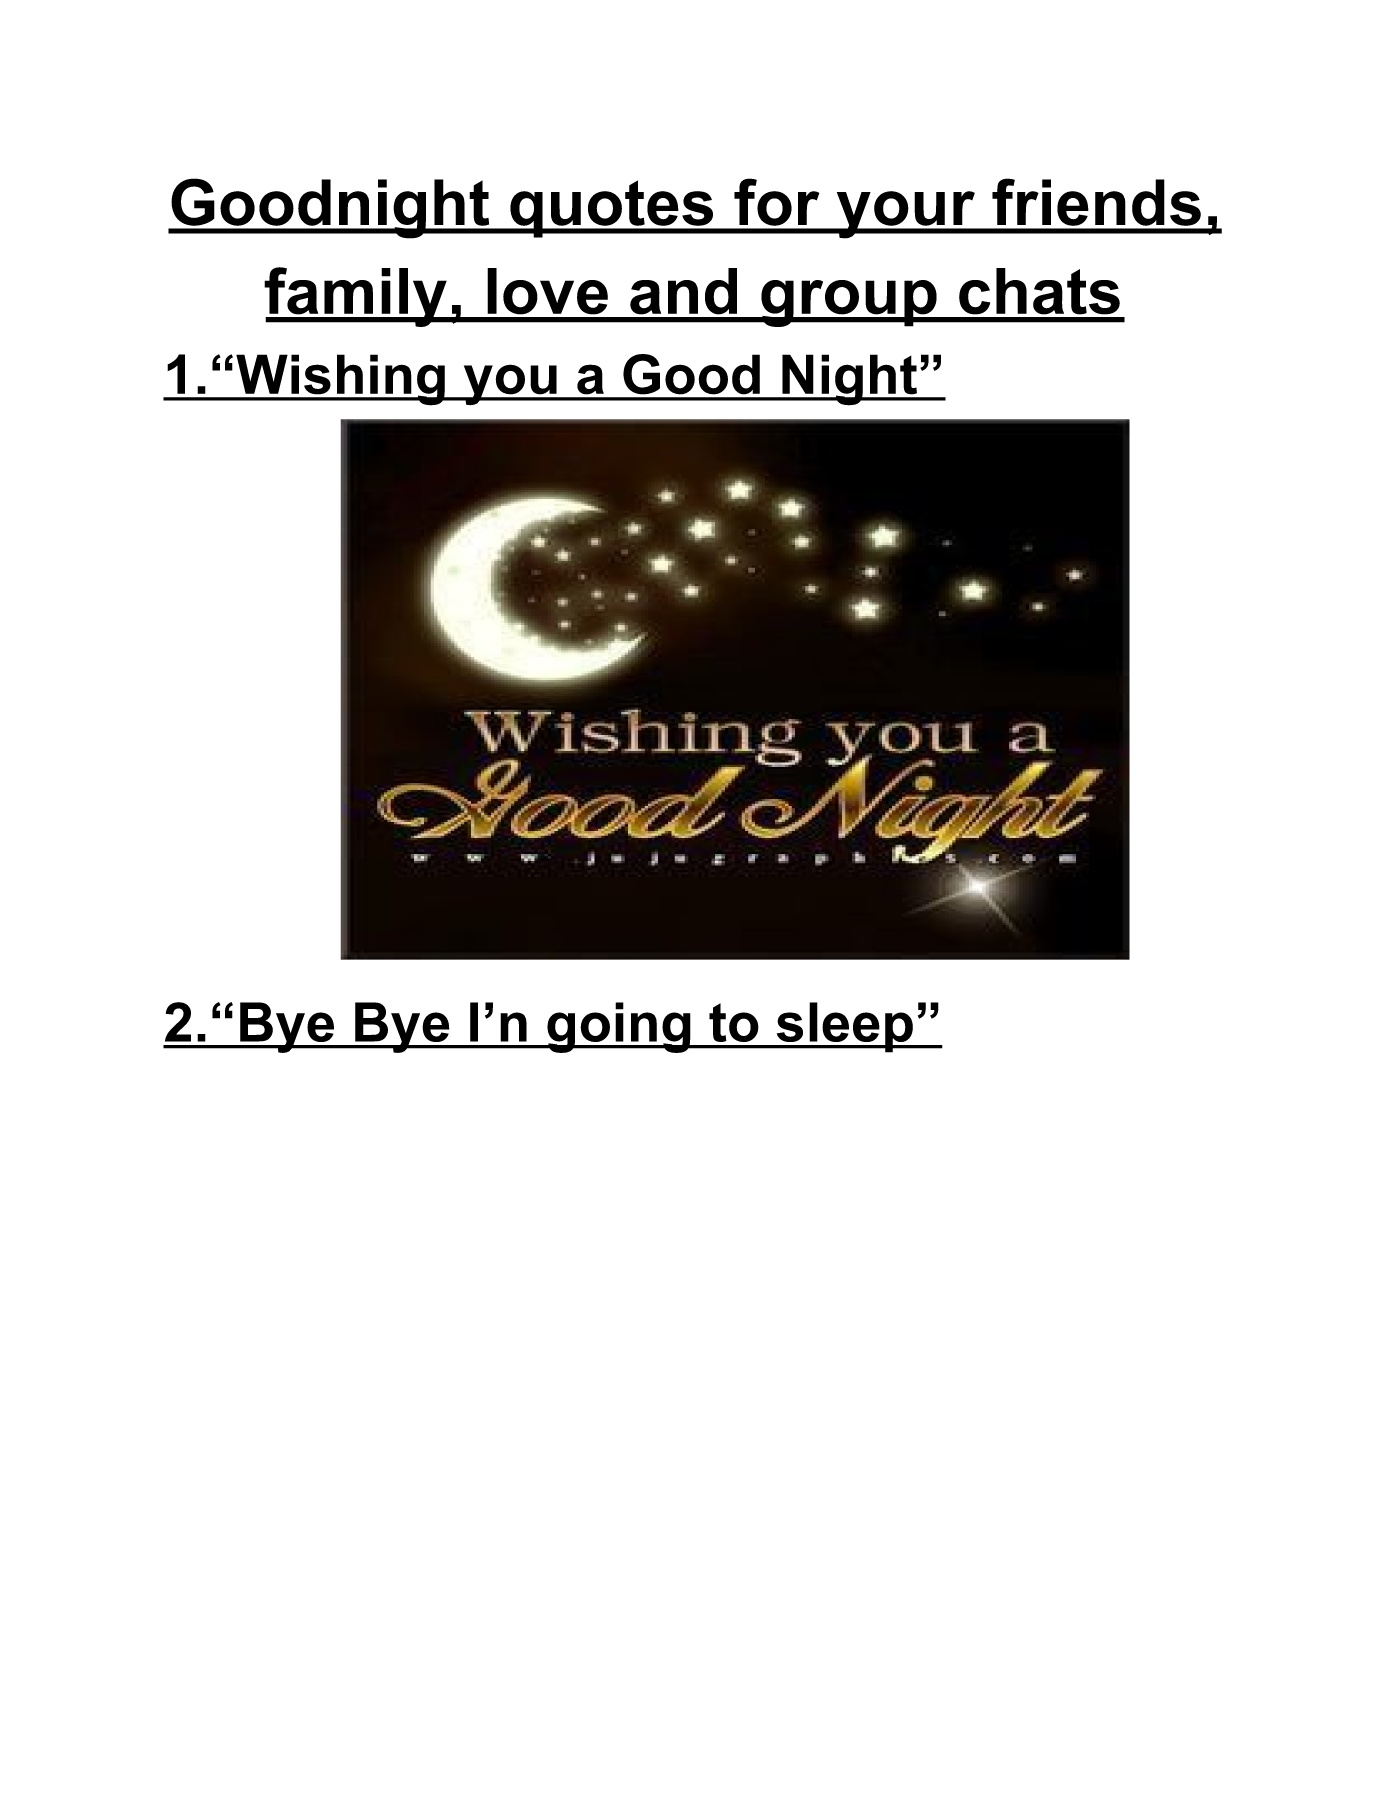 goodnight quotes for your friends family love and group chats